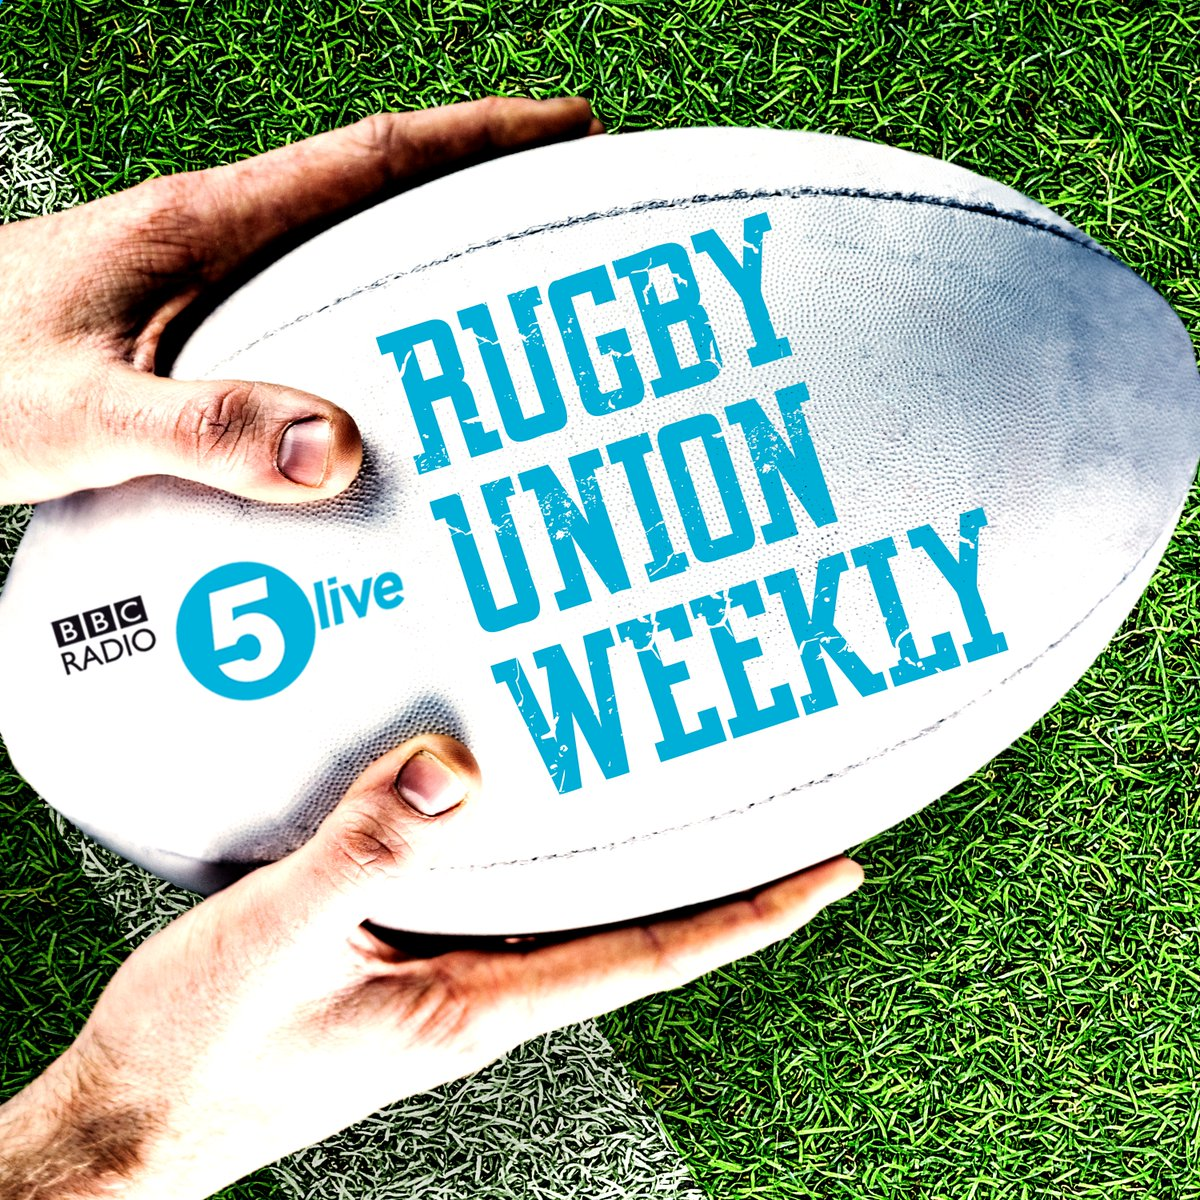 test Twitter Media - 🚨 A new #RugbyUnionWeekly is here. 🚨  @chjones9, @dannycare and @ugomonye are back together to look ahead to a pivotal round three of the Six Nations. 🏆  Listen to the full podcast 👇 🏉: https://t.co/yXjPpvz06f #bbcrugby #SixNations https://t.co/sWkQlzc6UK